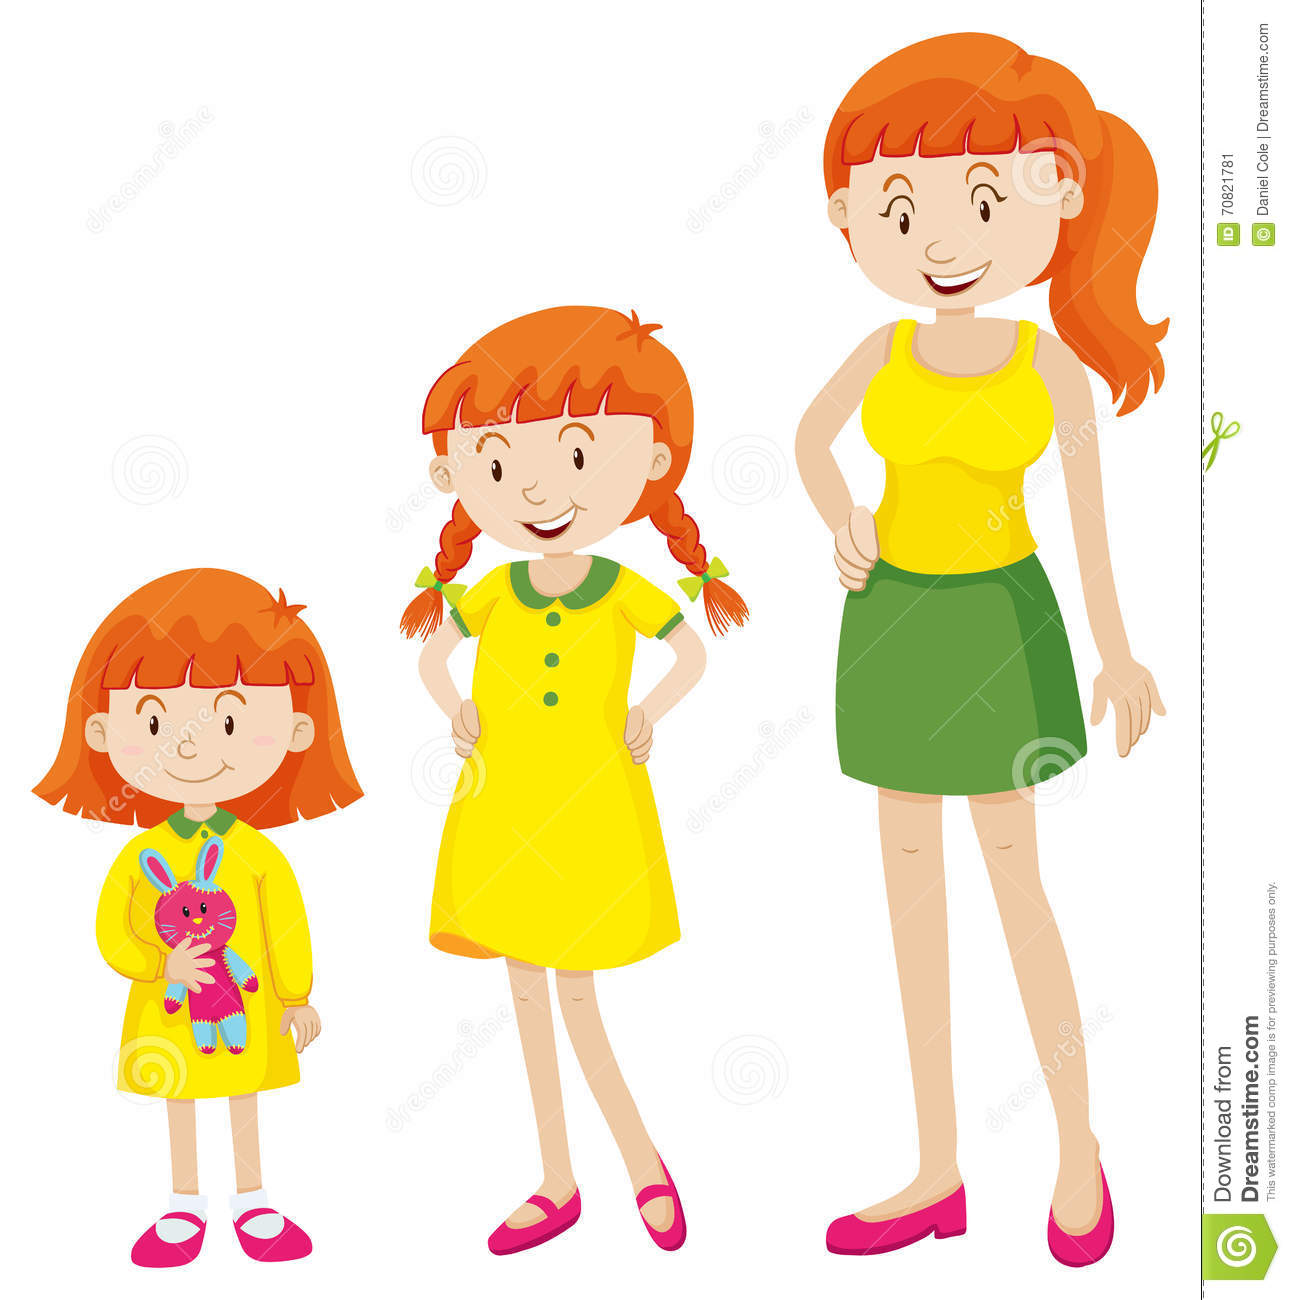 Child Growing Up Clipart.